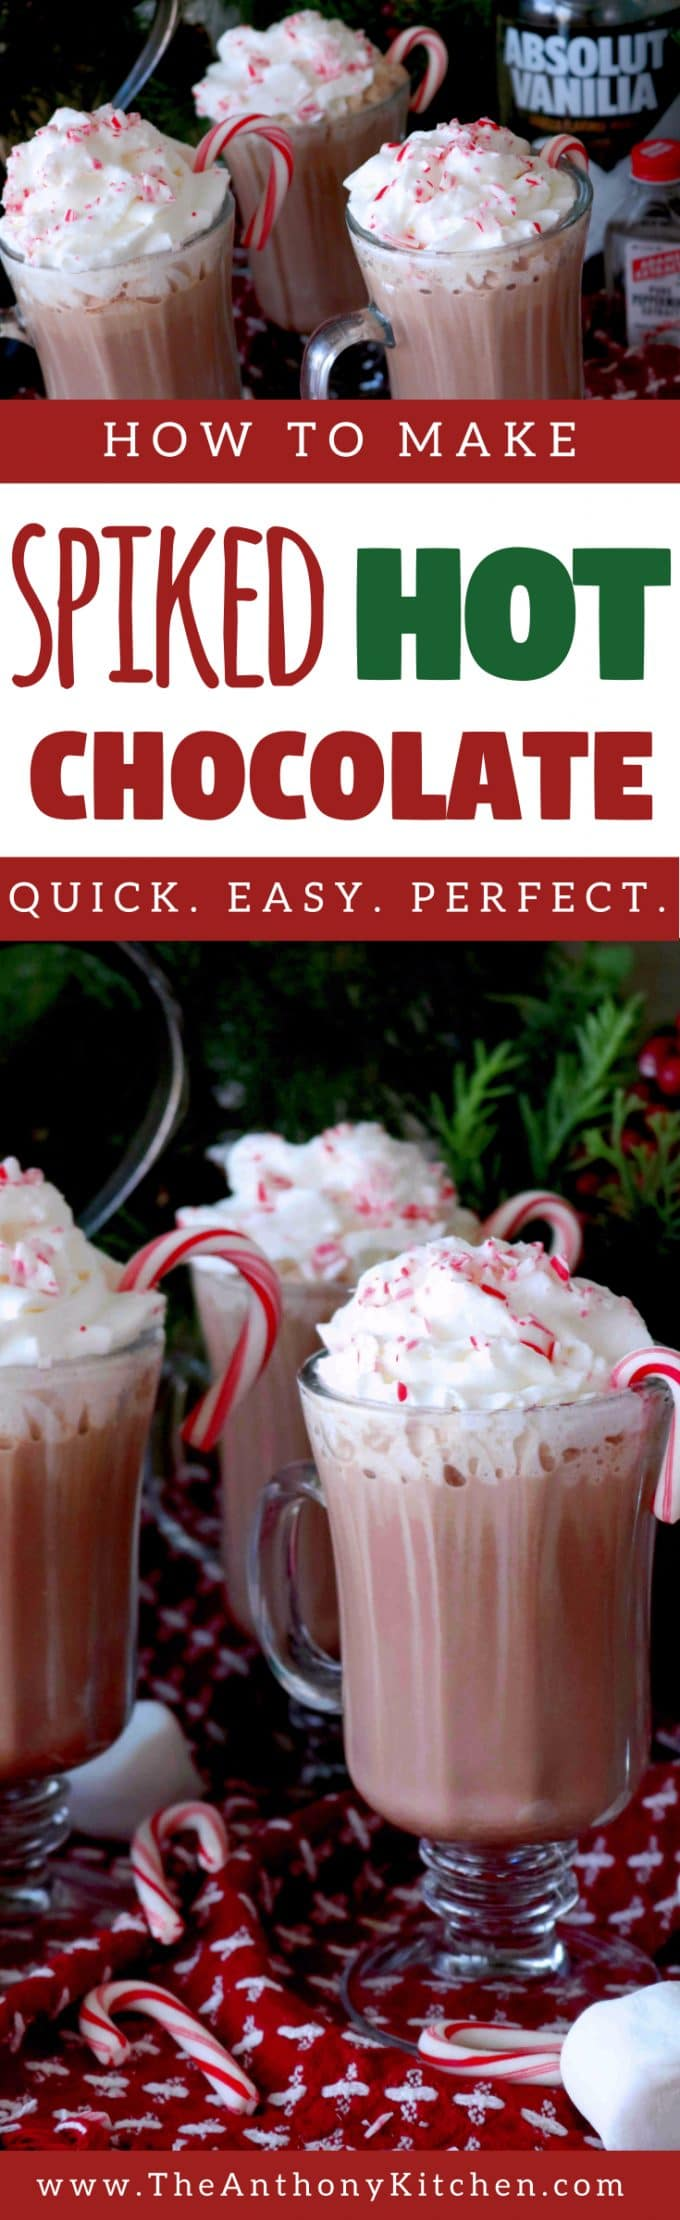 SPIKED HOT CHOCOLATE PIN